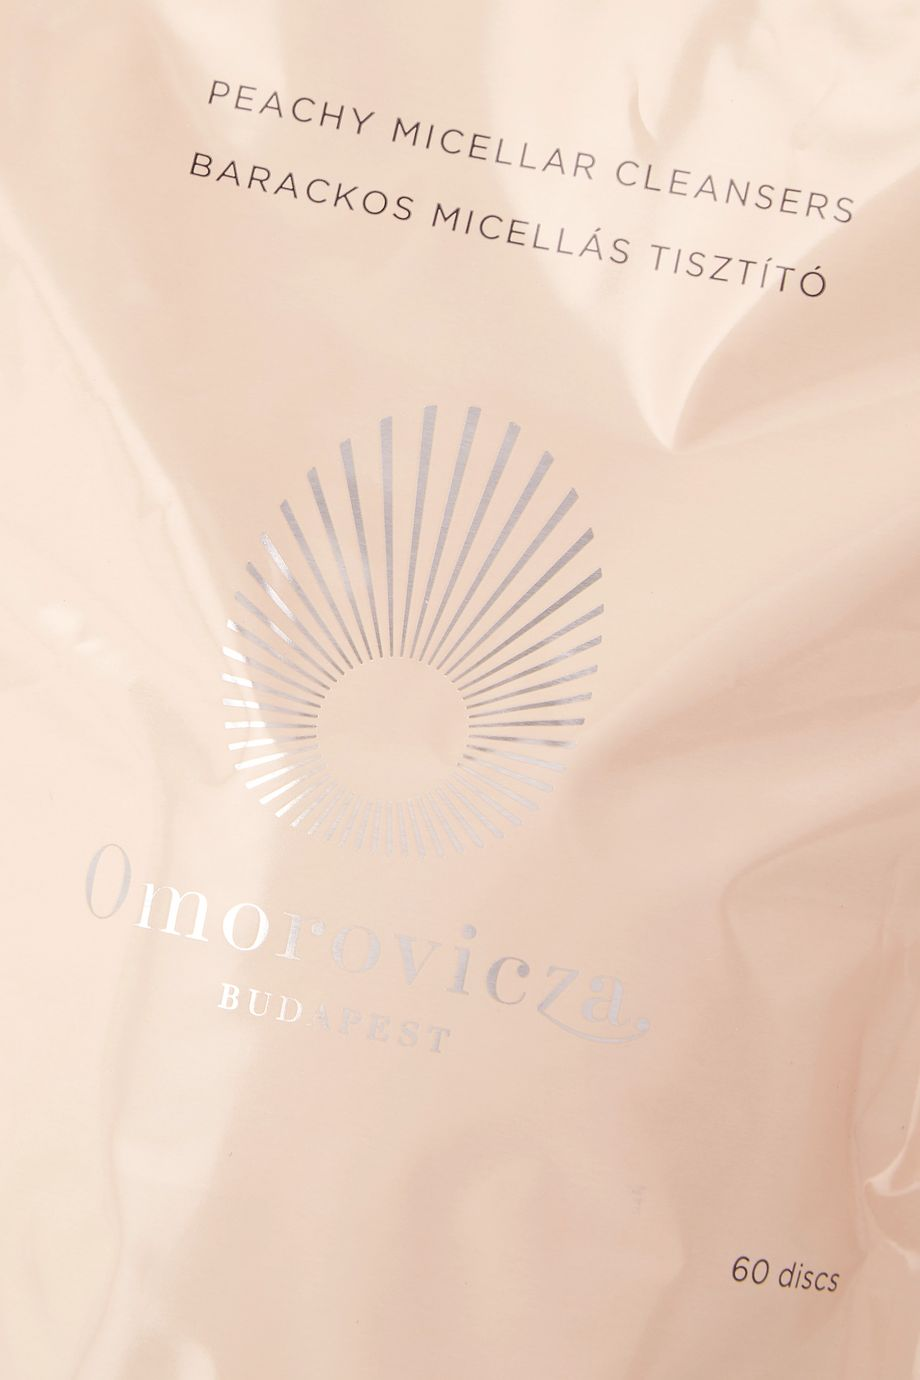 Omorovicza Peachy Micellar Cleanser Refills, 60 discs